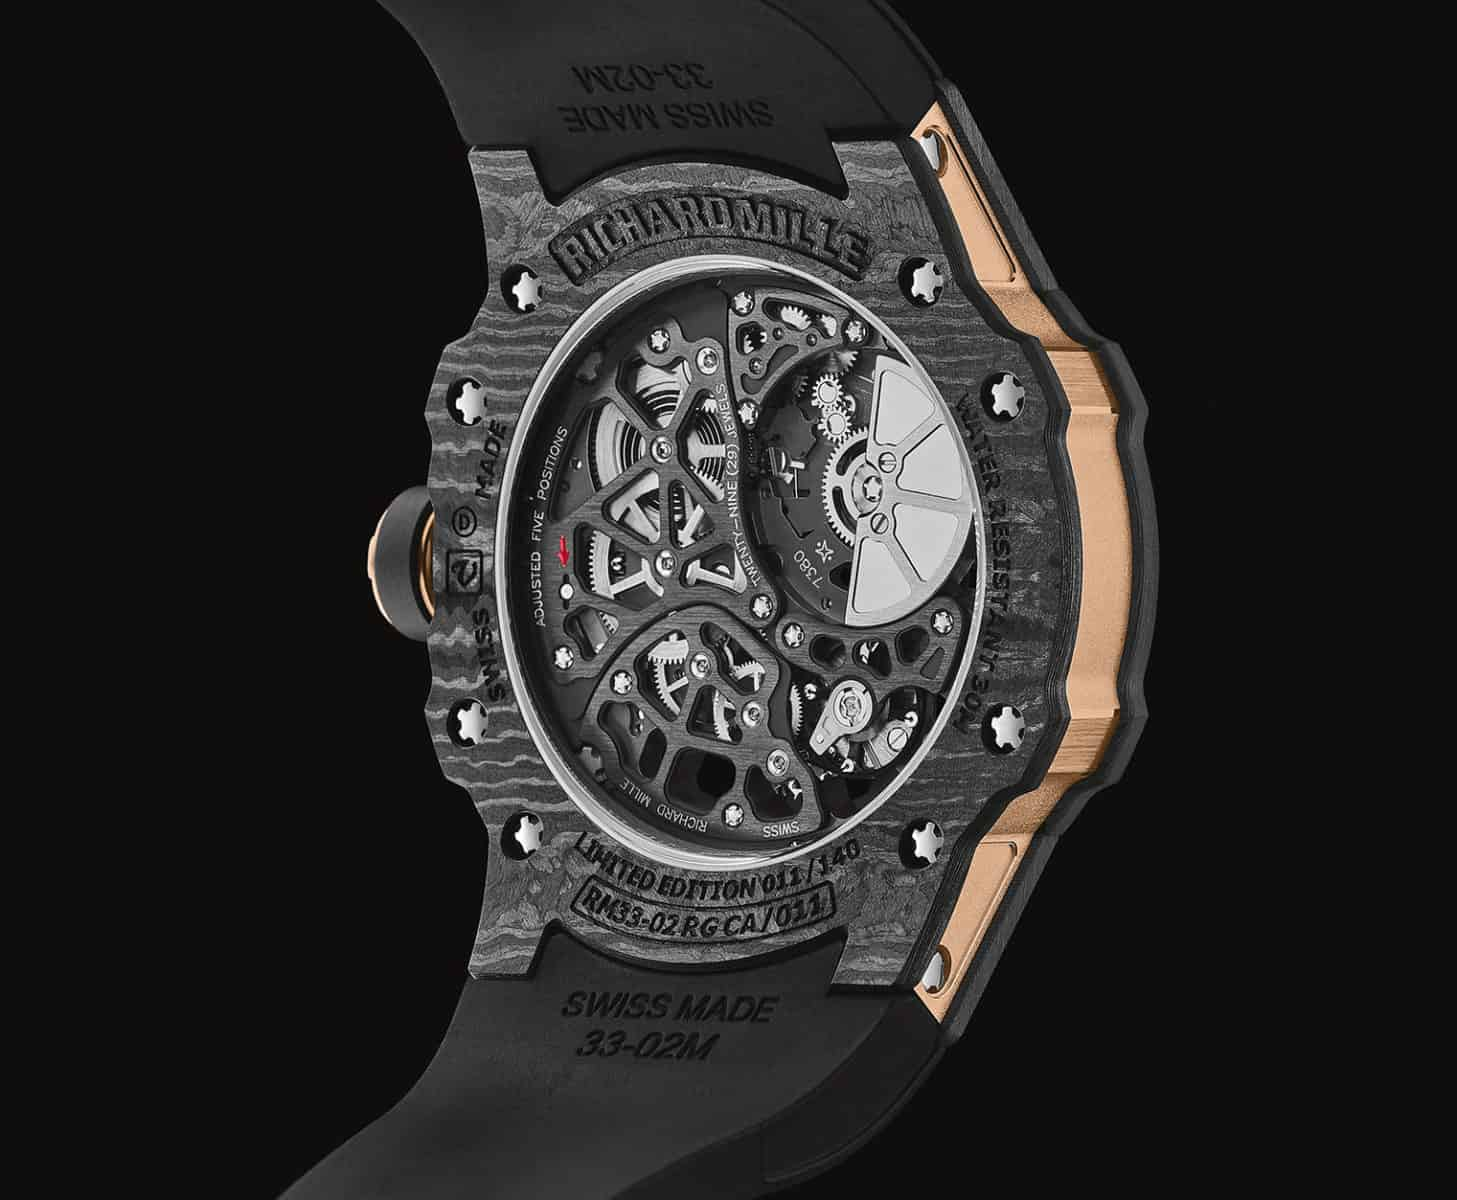 Carbon Goodness: Richard Mille's new RM 33-02 Automatic